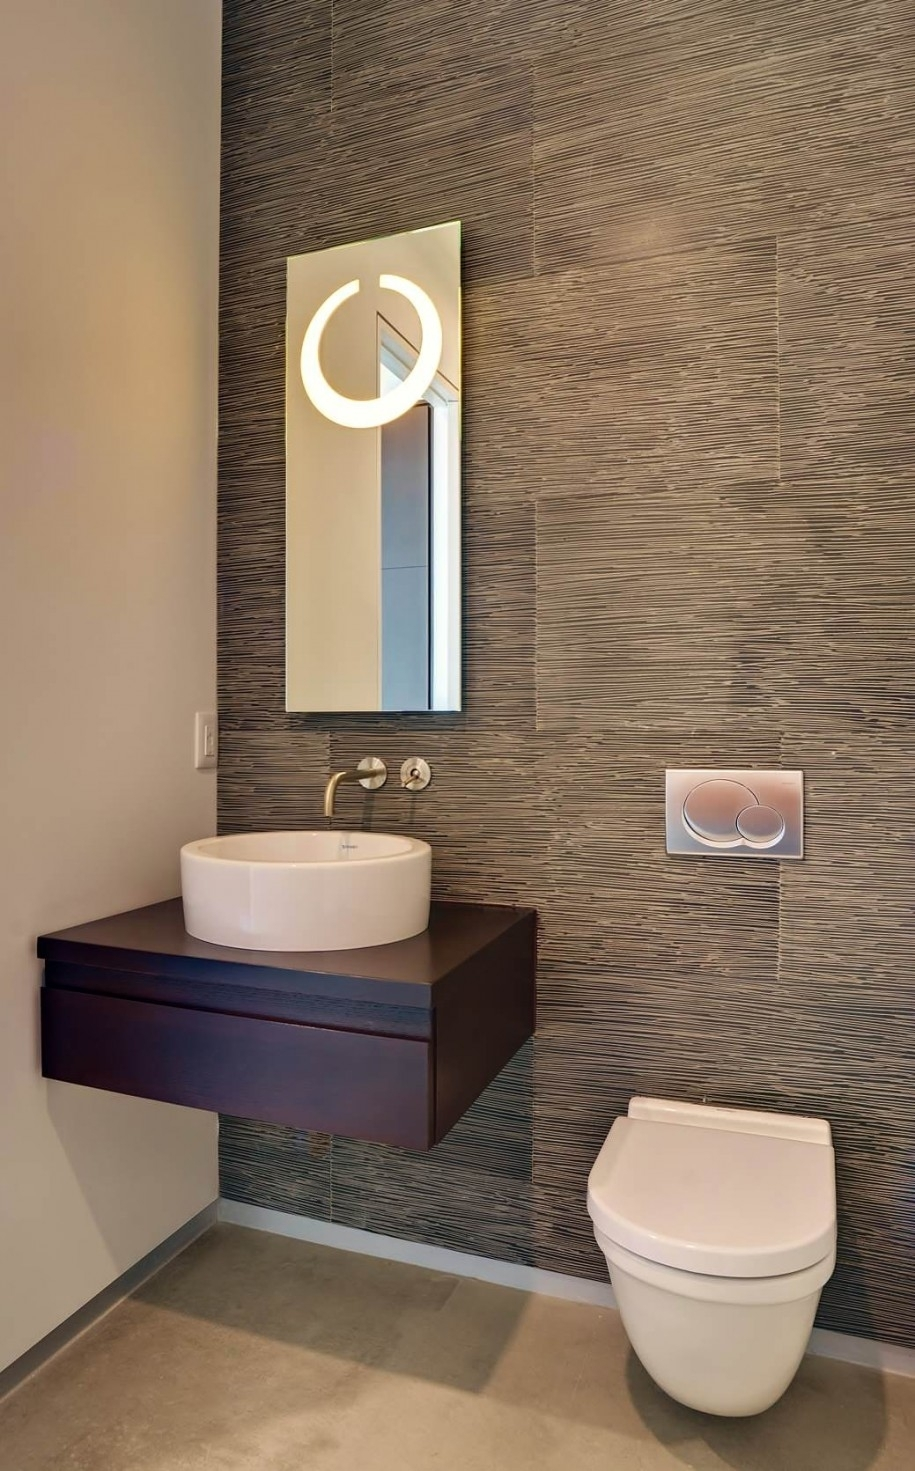 Modern Small Powder Room Design Featuring Cool Grey Wood Grain With Regard To Latest Wall Accents Behind Toilet (View 9 of 15)